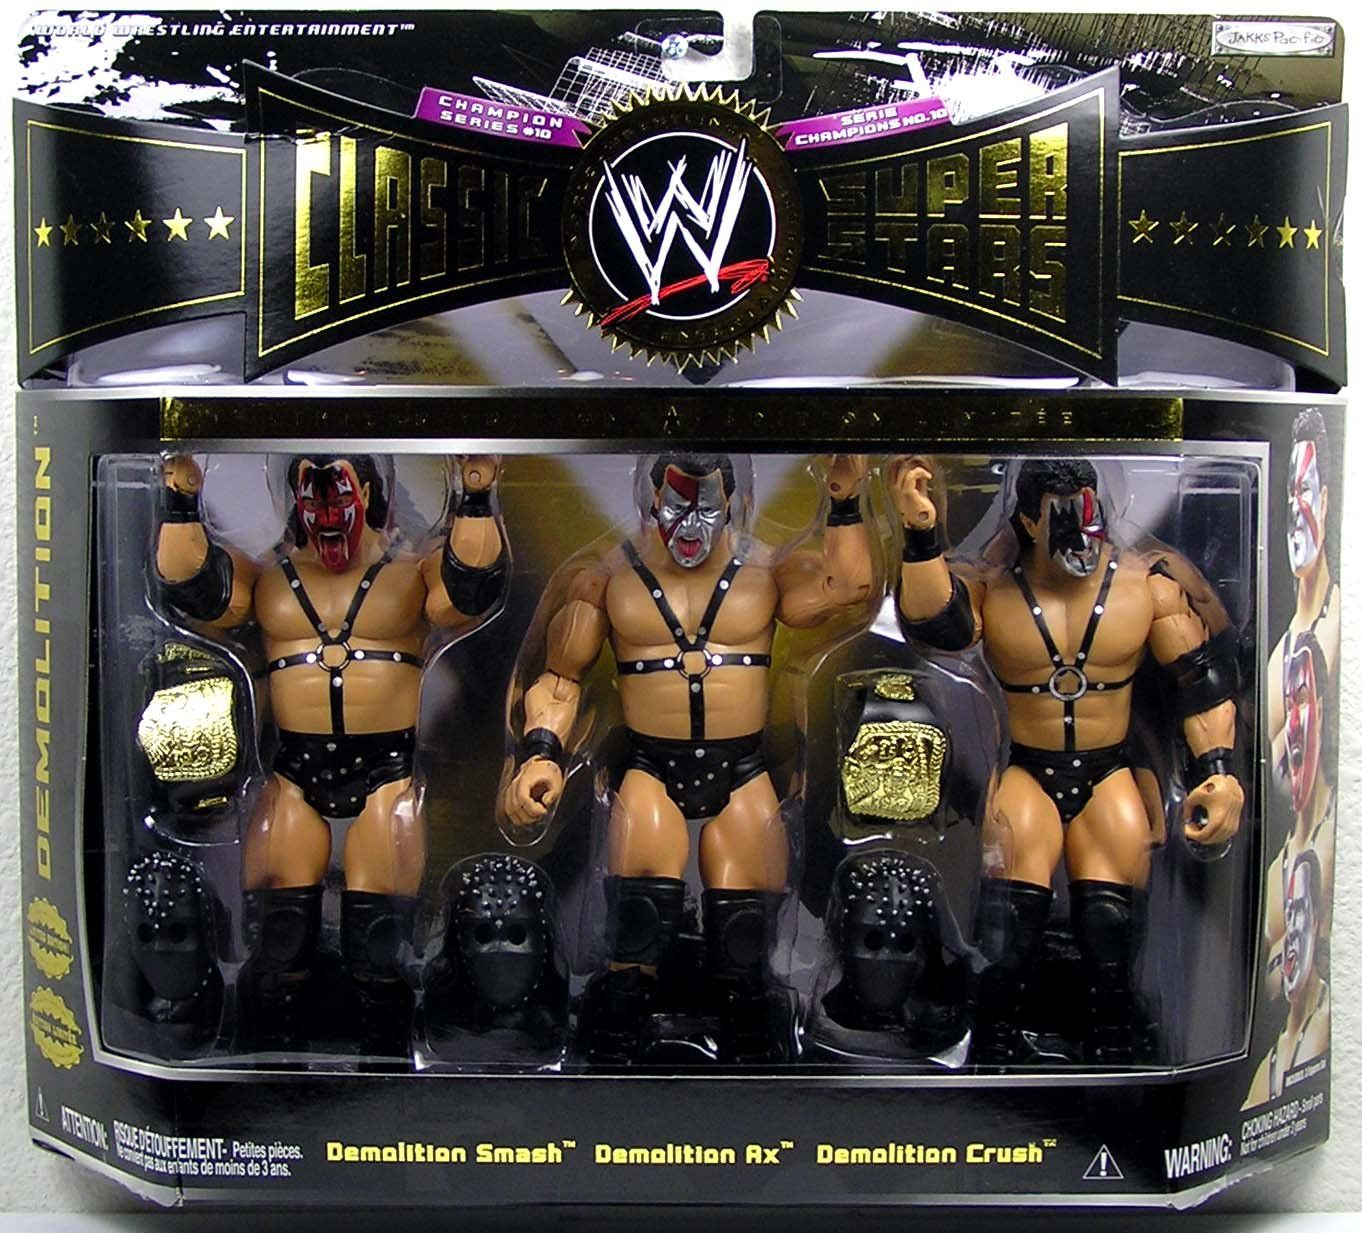 WWE Wrestling Classic Superstars Limited Edition Champion Series 3-Pack Demolition (Smash, Ax and Crush). WWE Wrestling Classic Superstars Limited Edition Champion Series Demolition 3-Pack Action Figure Set (Smash, Ax and Crush).